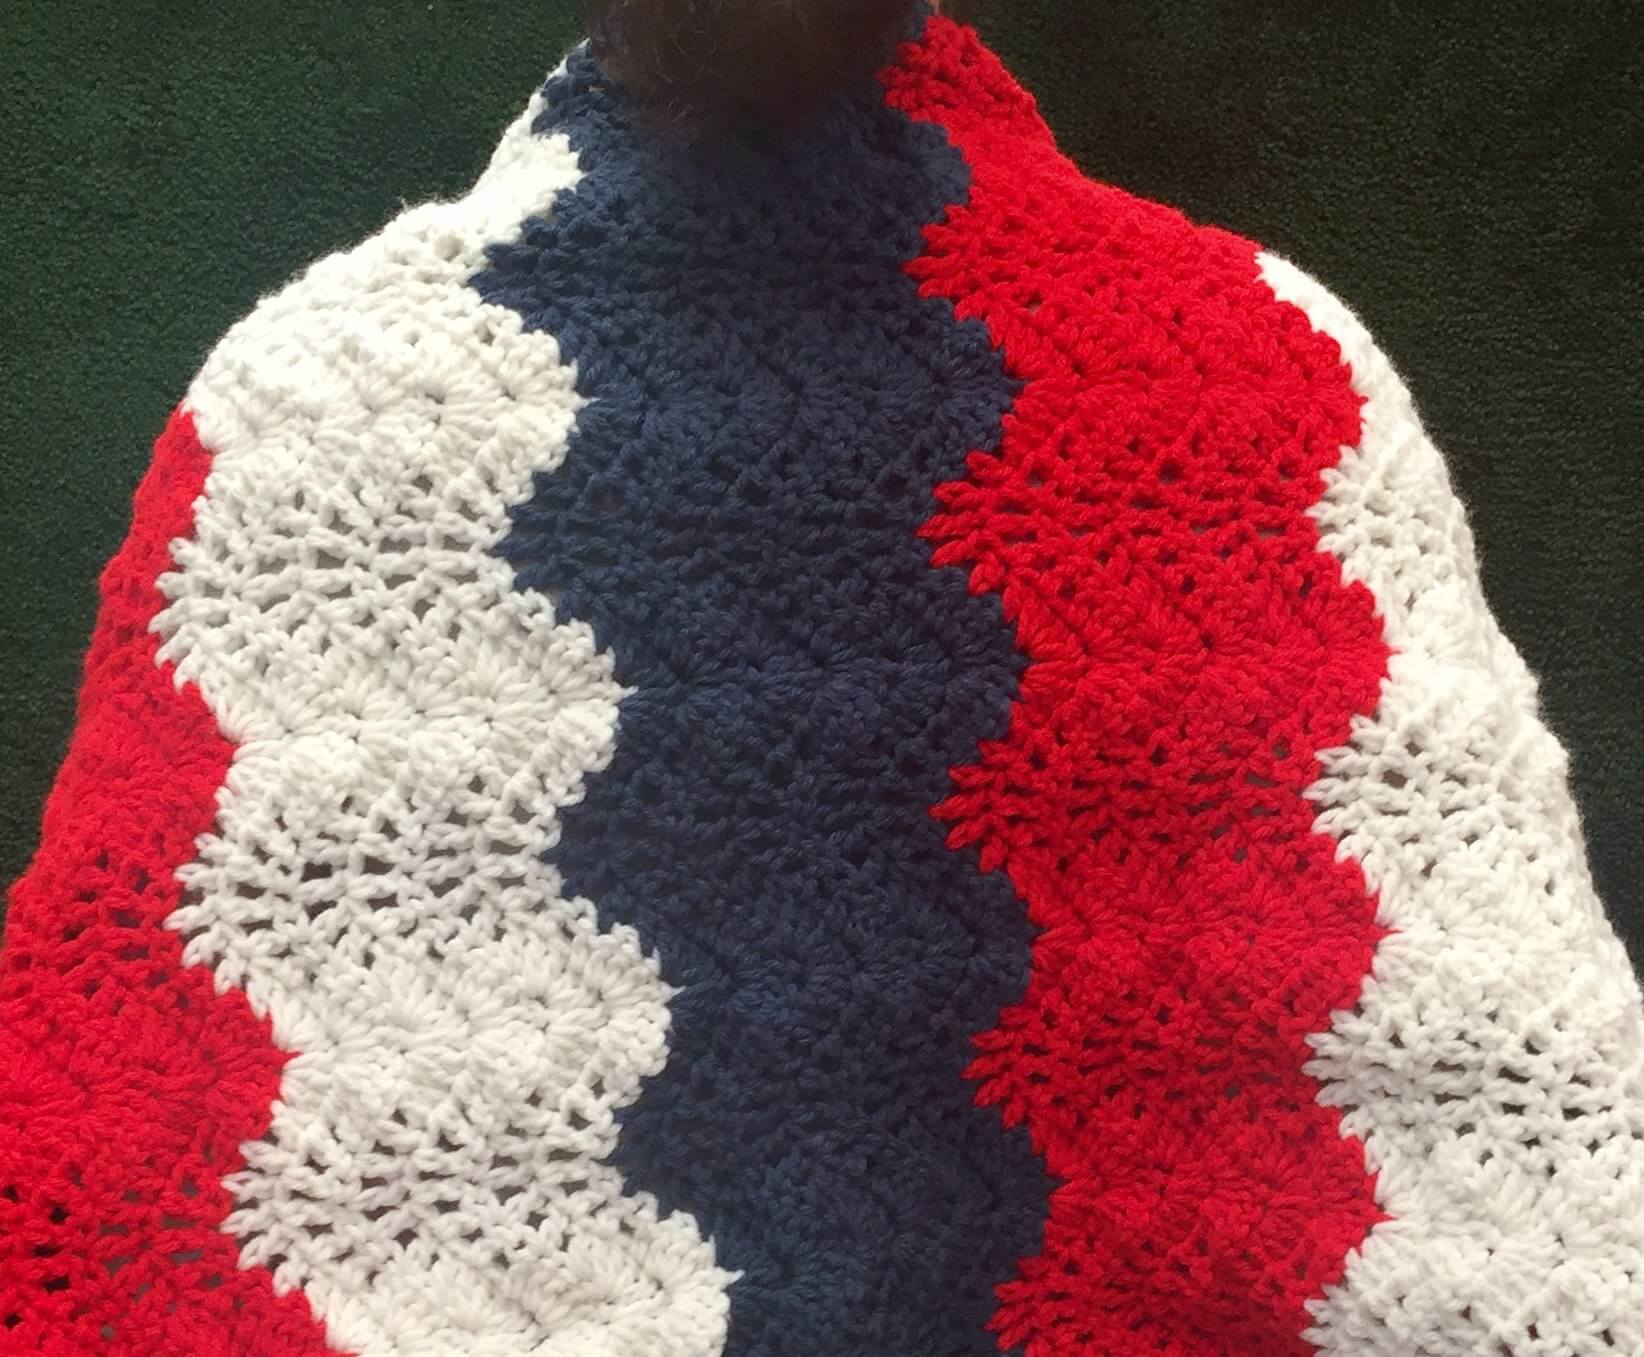 Prayer Shawl - Ascension Lutheran Church Thousand Oaks